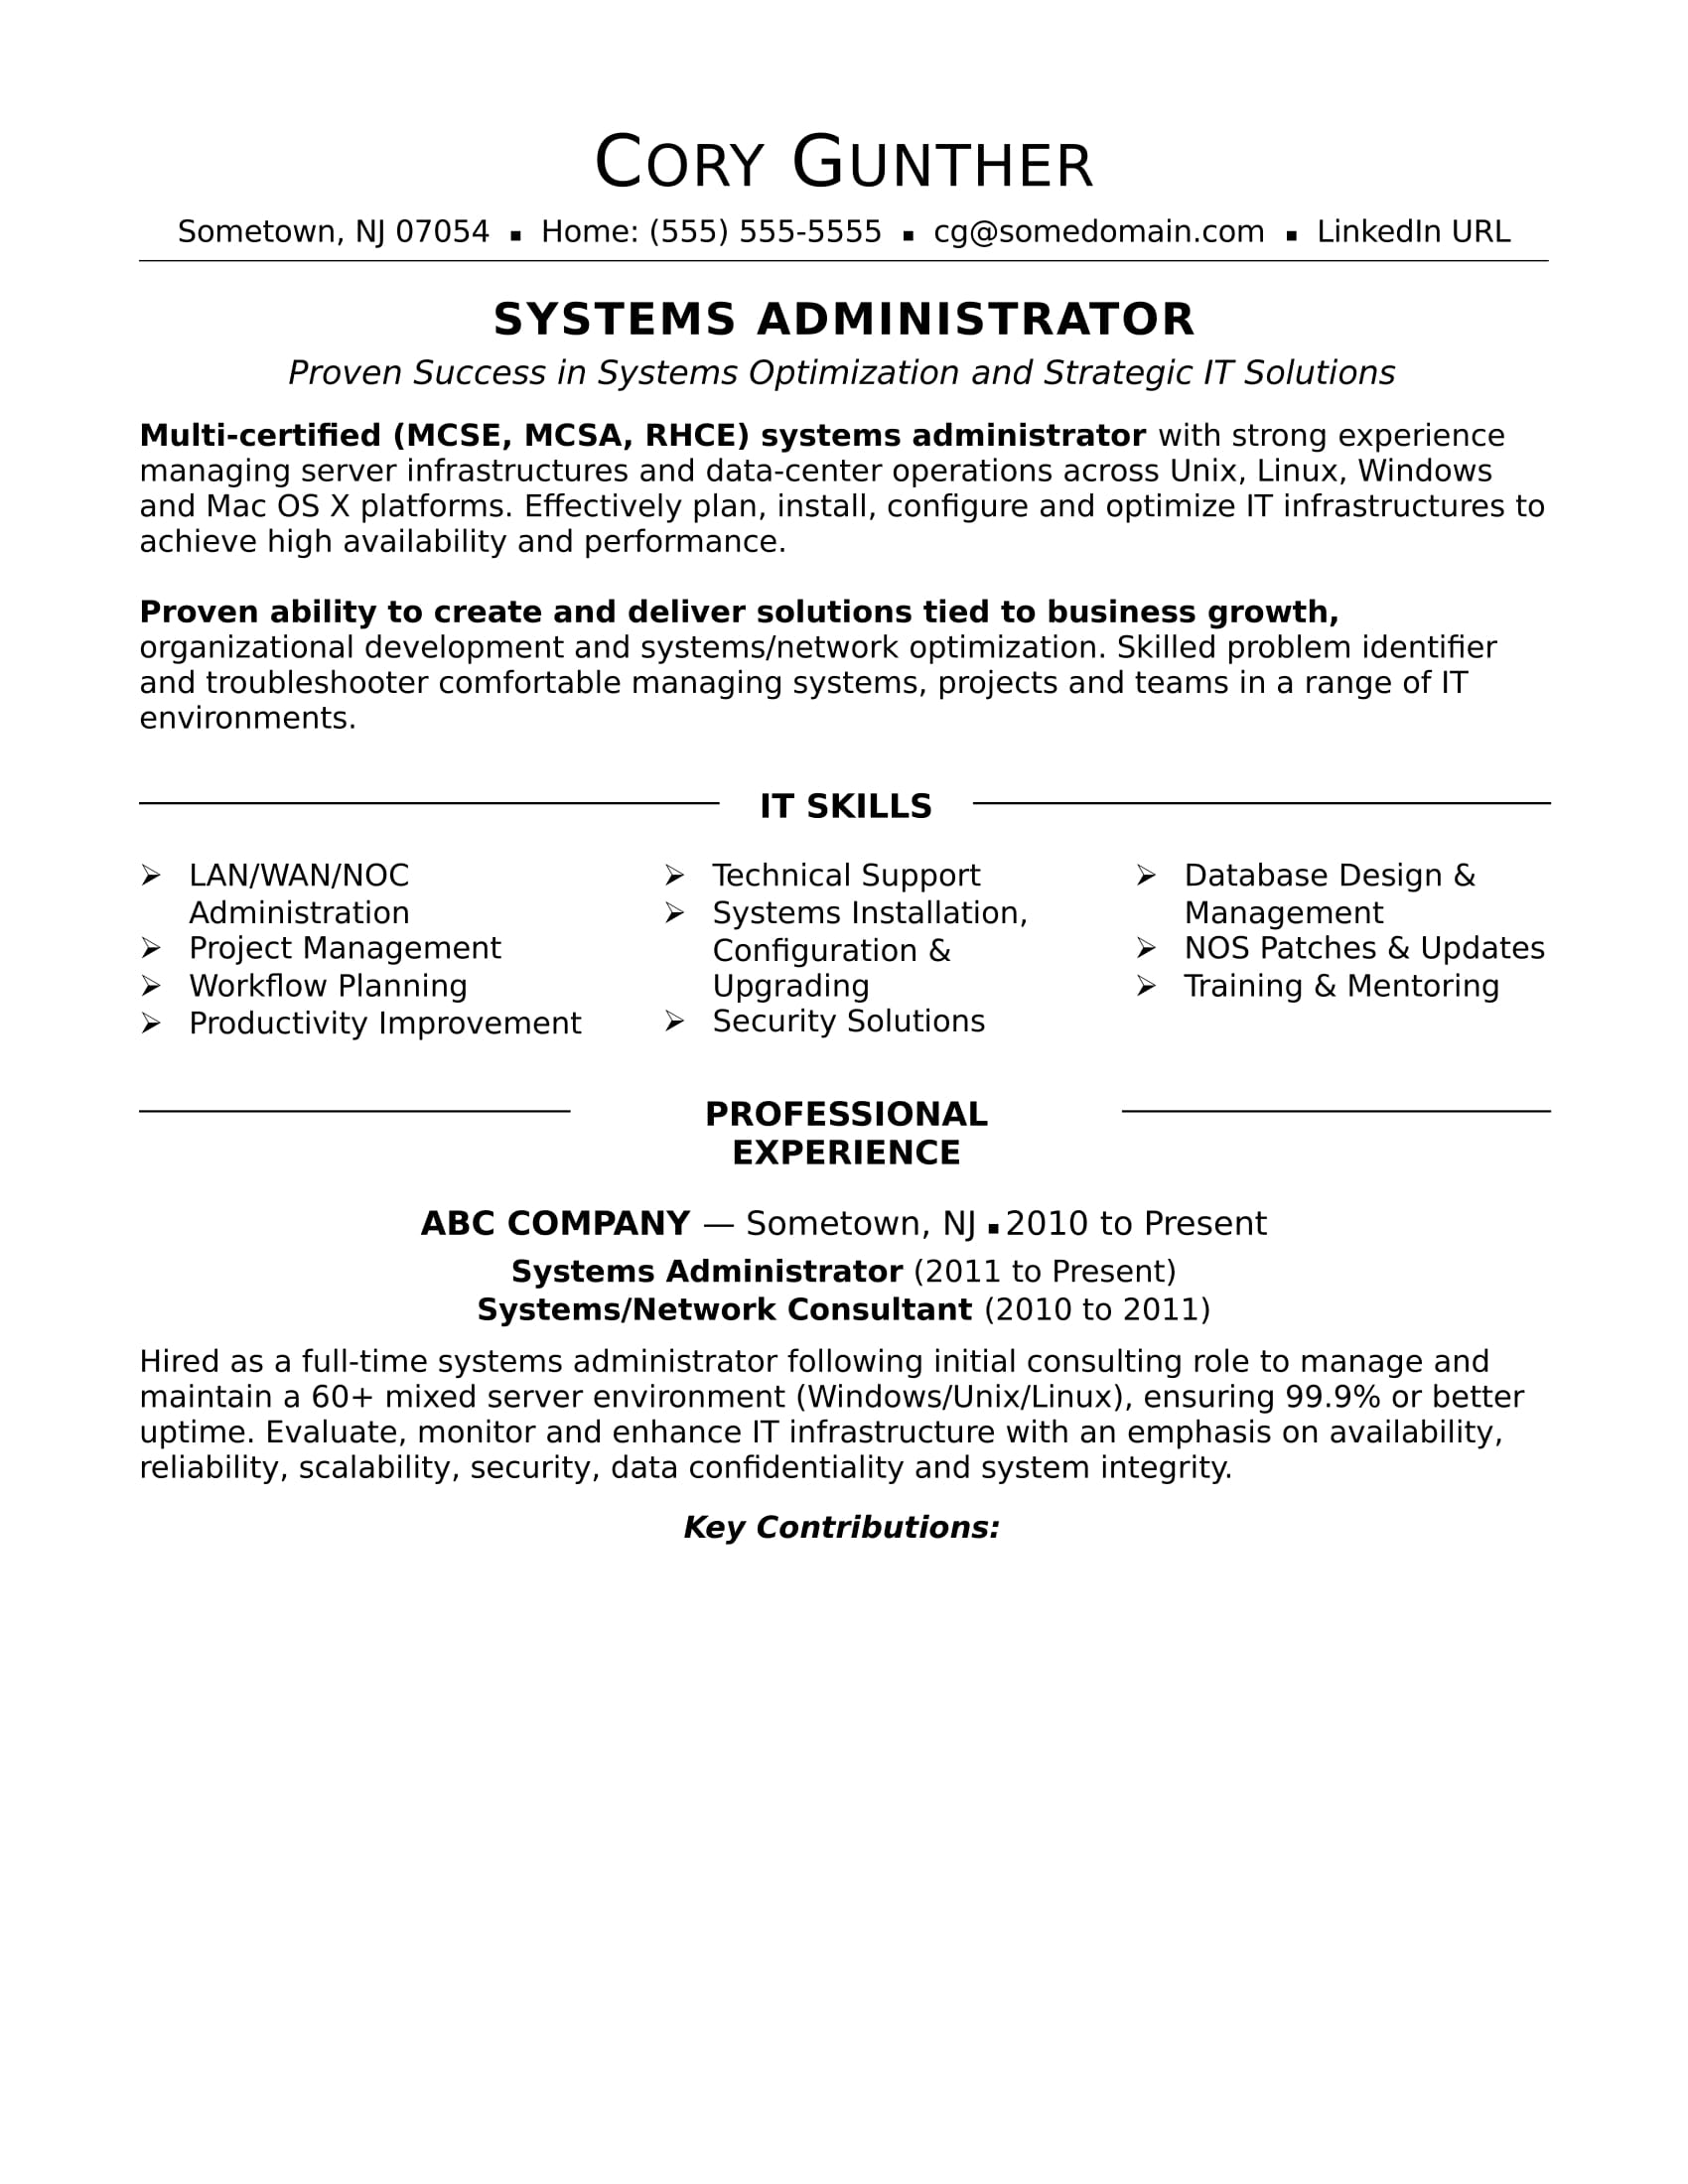 sample resume for an experienced systems administrator monster skill set template best Resume Skill Set Resume Template